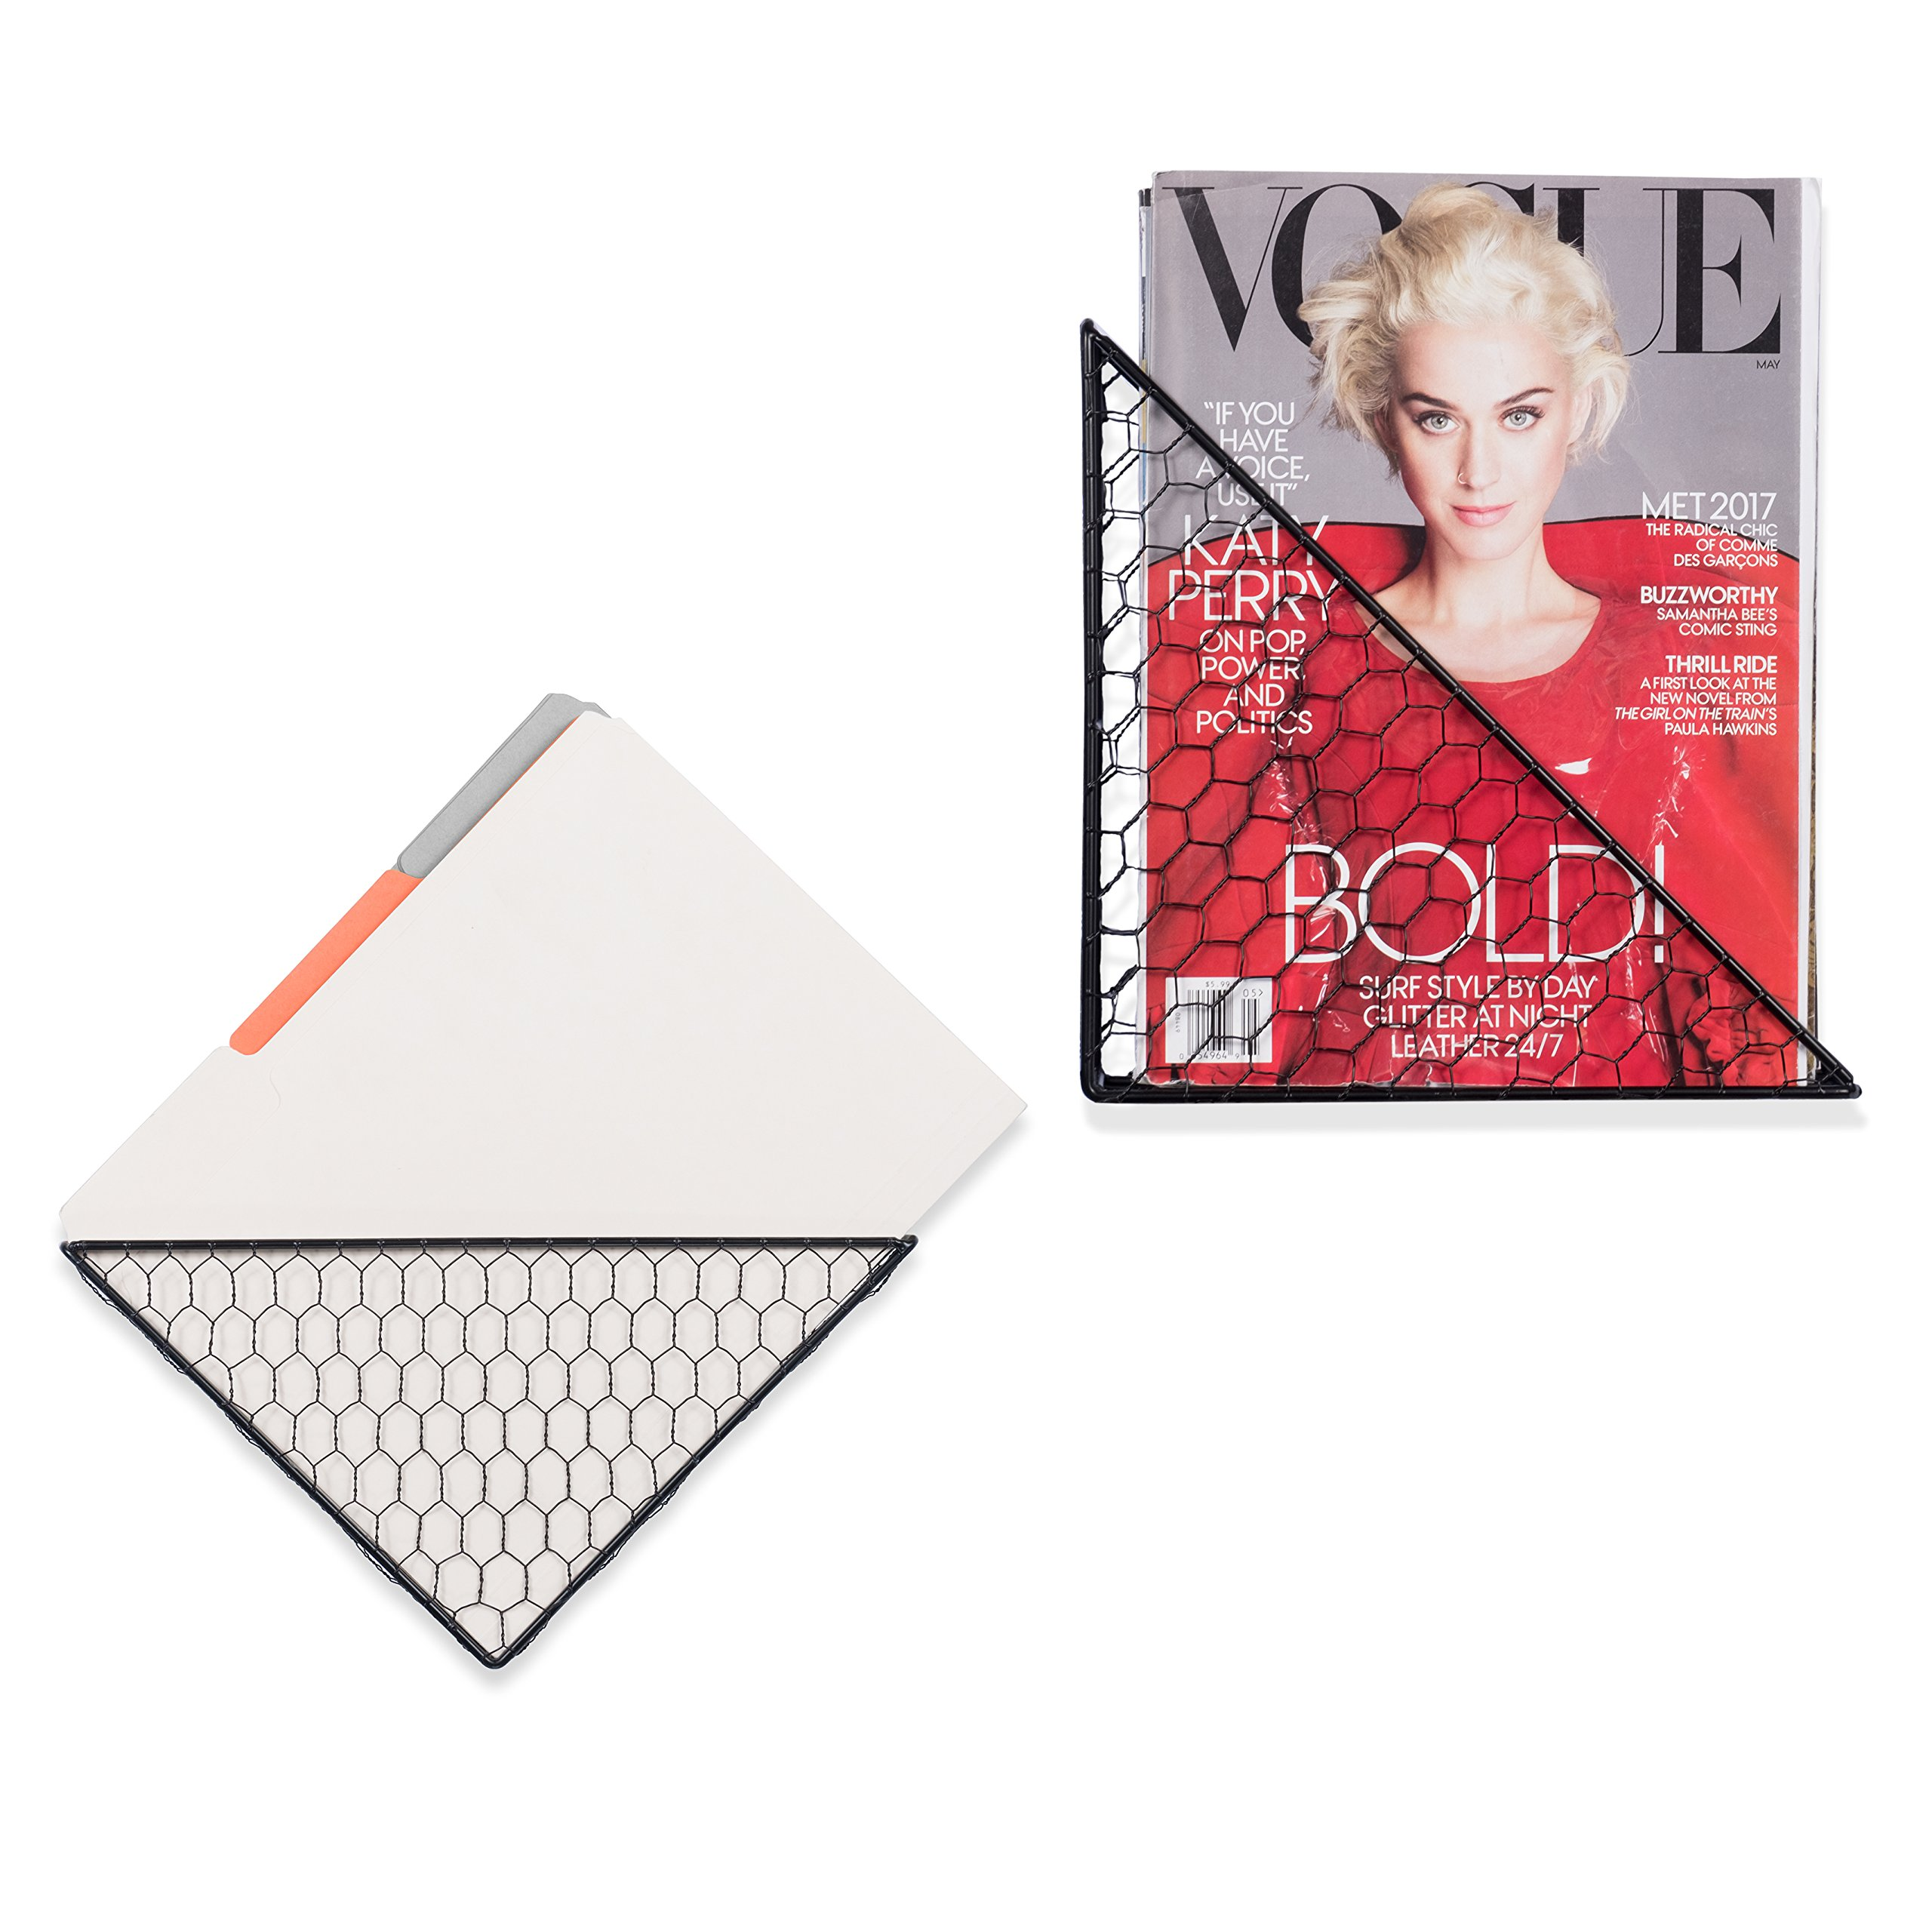 WALL35 Compact Triangle Shaped Playful File Folder Racks Chicken Wire Metal Black Set of 2